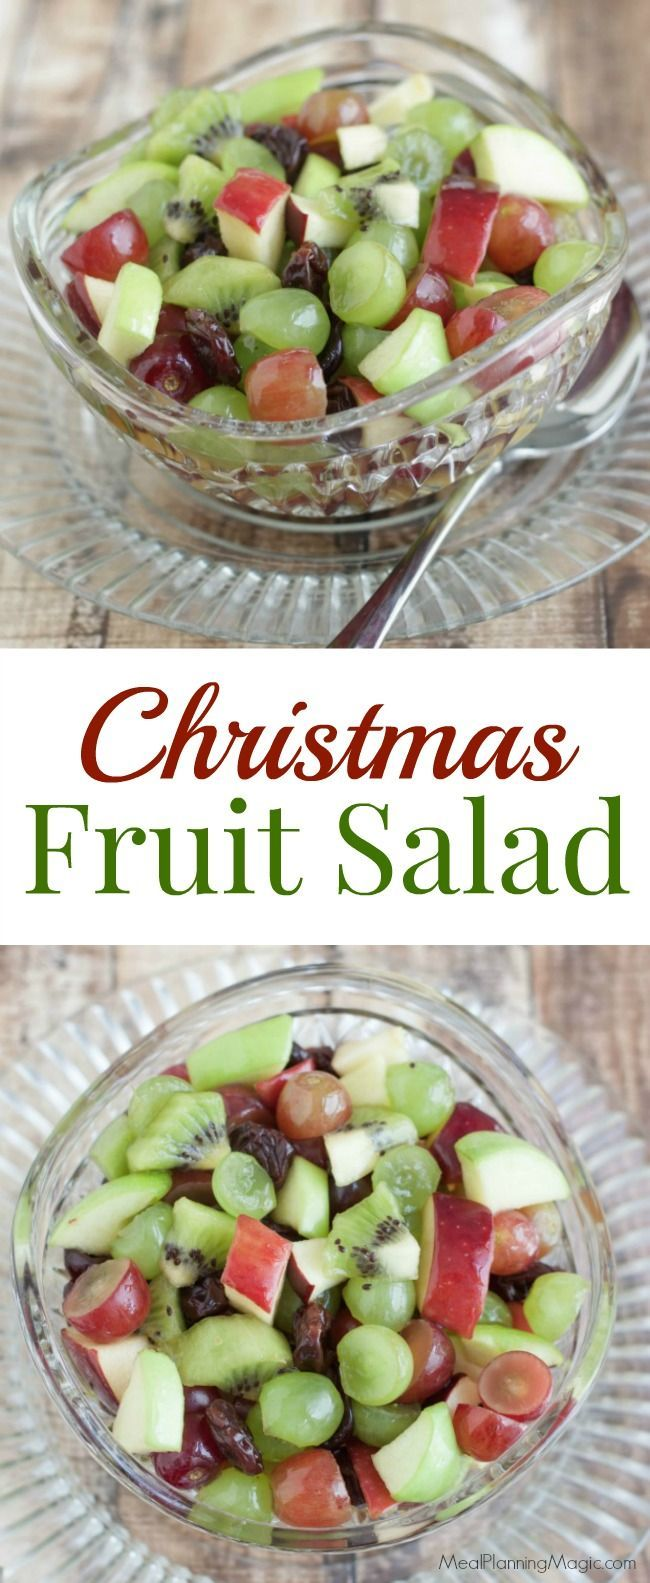 Who says the holidays can't be healthier? This festive Christmas Fruit Salad has very little added sugar (from honey) and is perfect for just about any occasion! http://www.mealplanningmagic.com/christmas-fruit-salad/